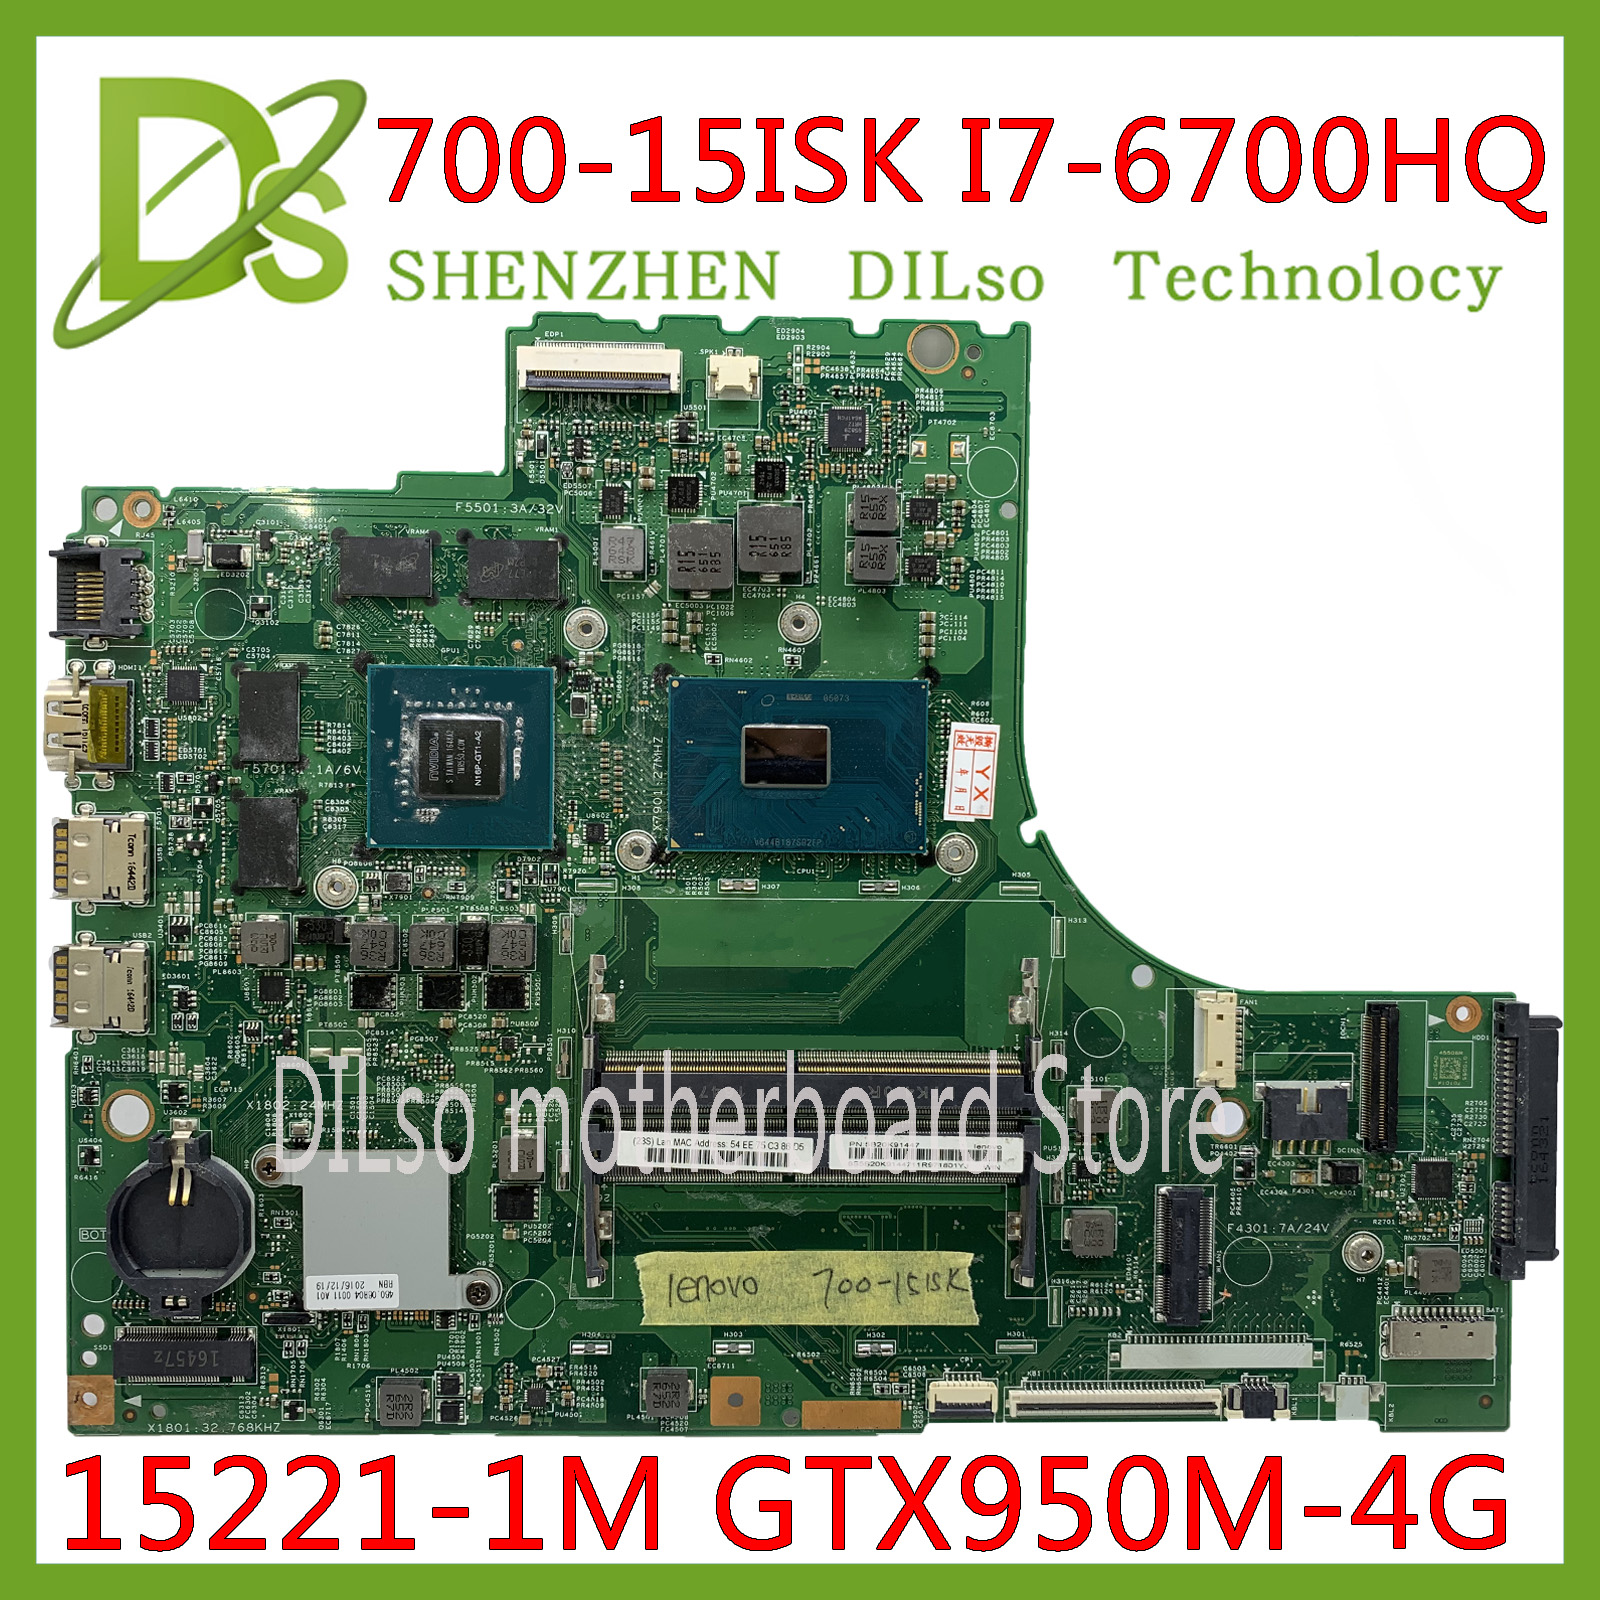 KEFU 700-15ISK Laptop motherboard for Lenovo 700-15 700-15ISK motherbaord DDR4 I7-6700HQ GTX950-4GB 15221-1M 448.06R01.001M